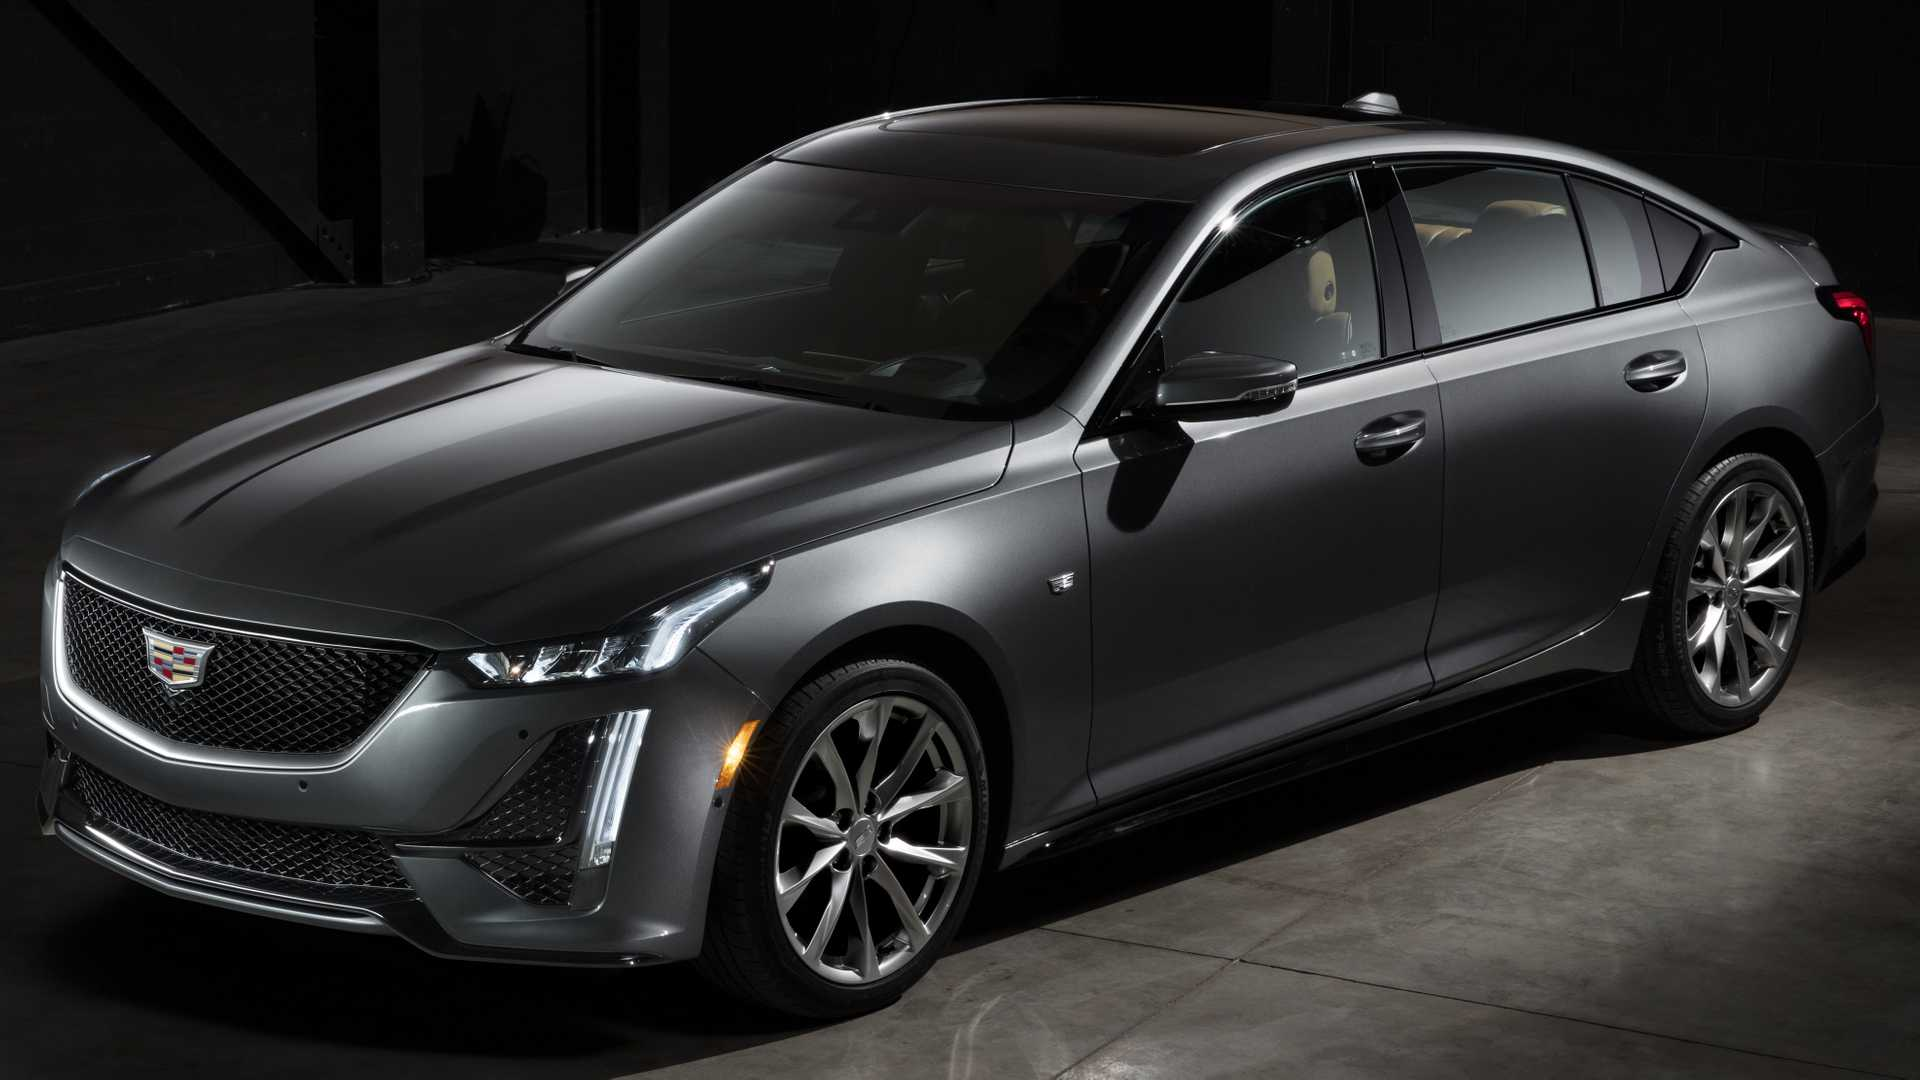 77 All New 2020 Cadillac Ats New Model And Performance